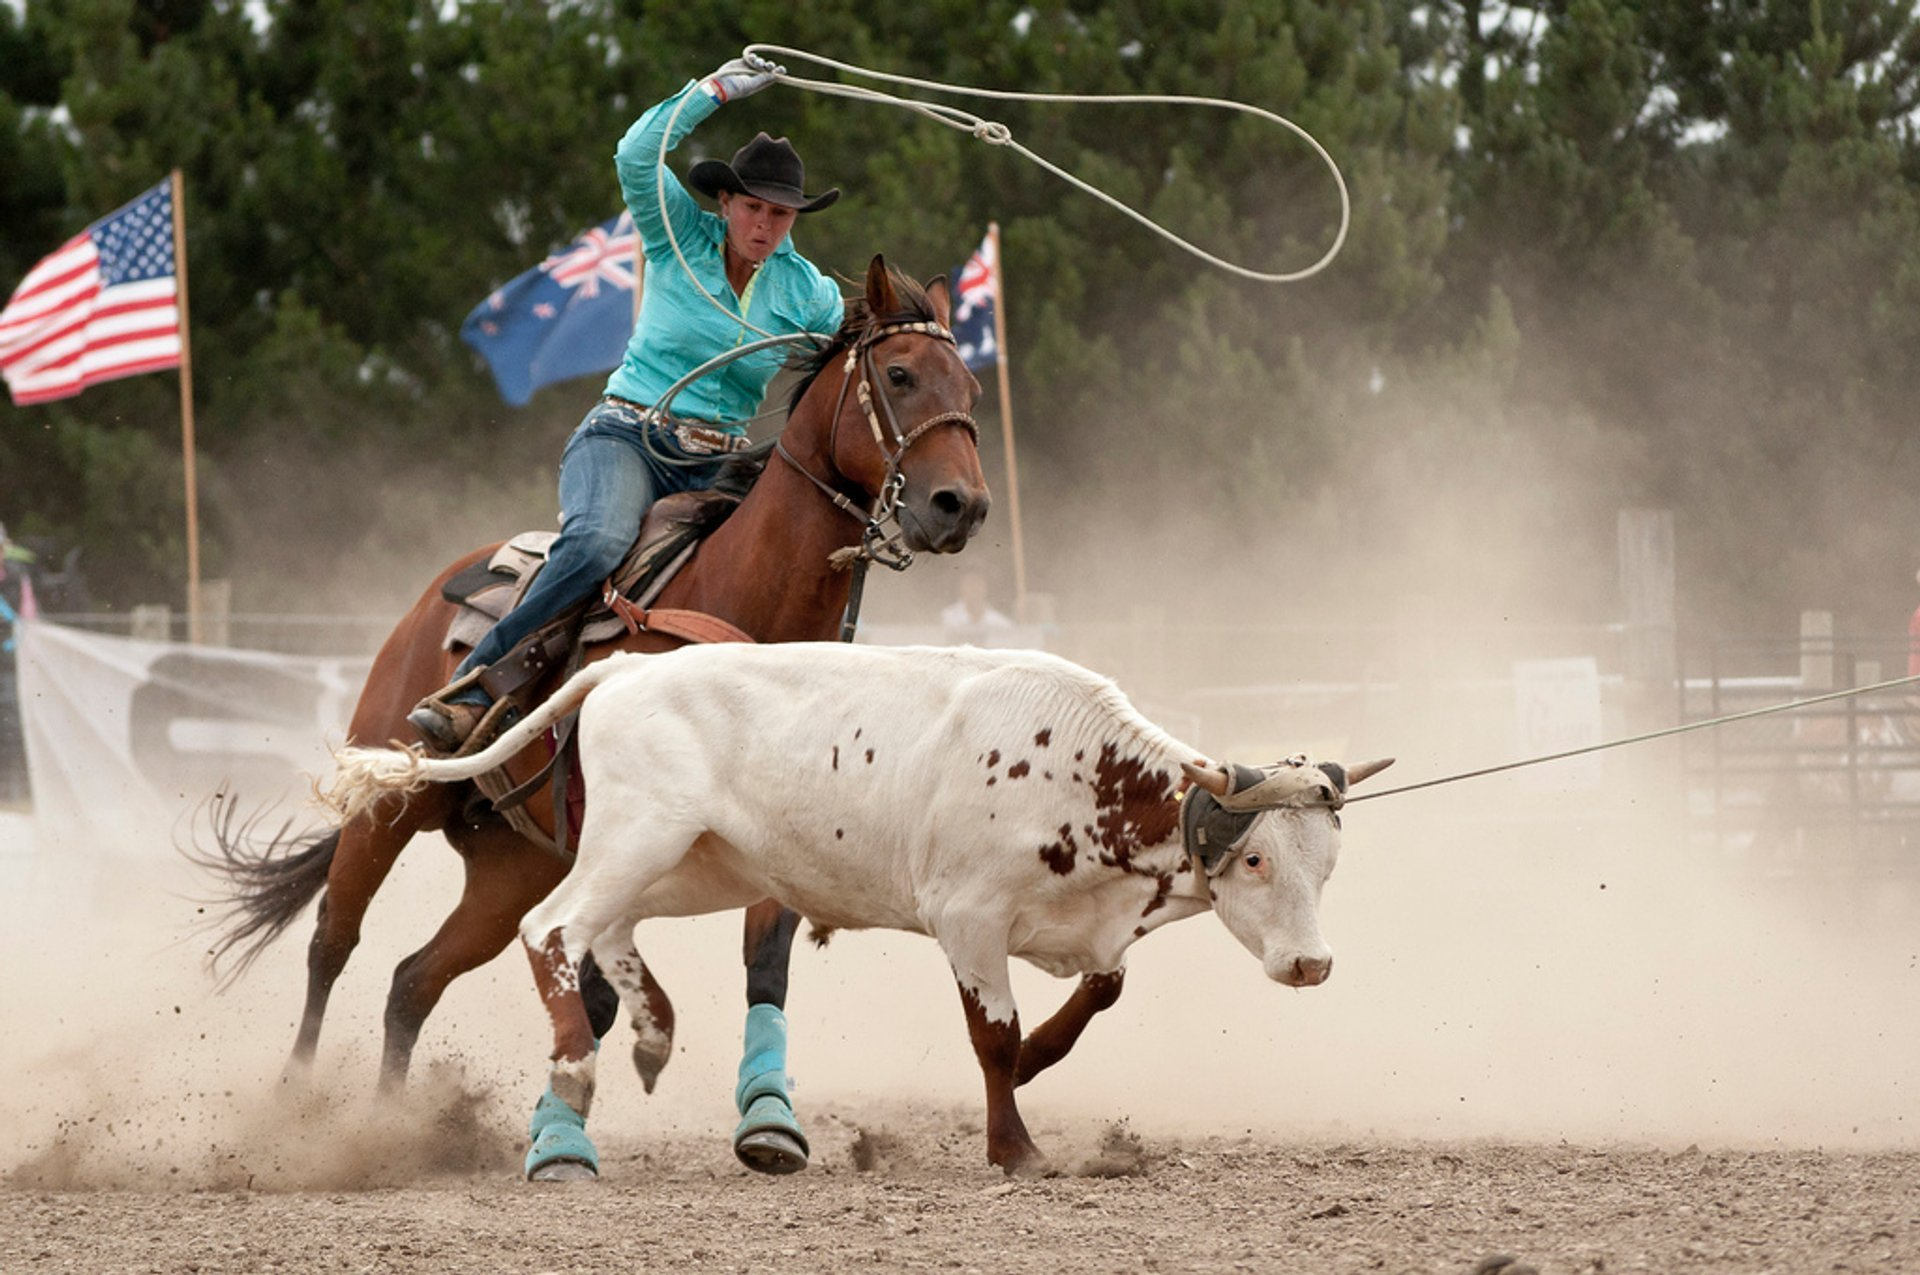 Rodeo in New Zealand 2020 - Best Time